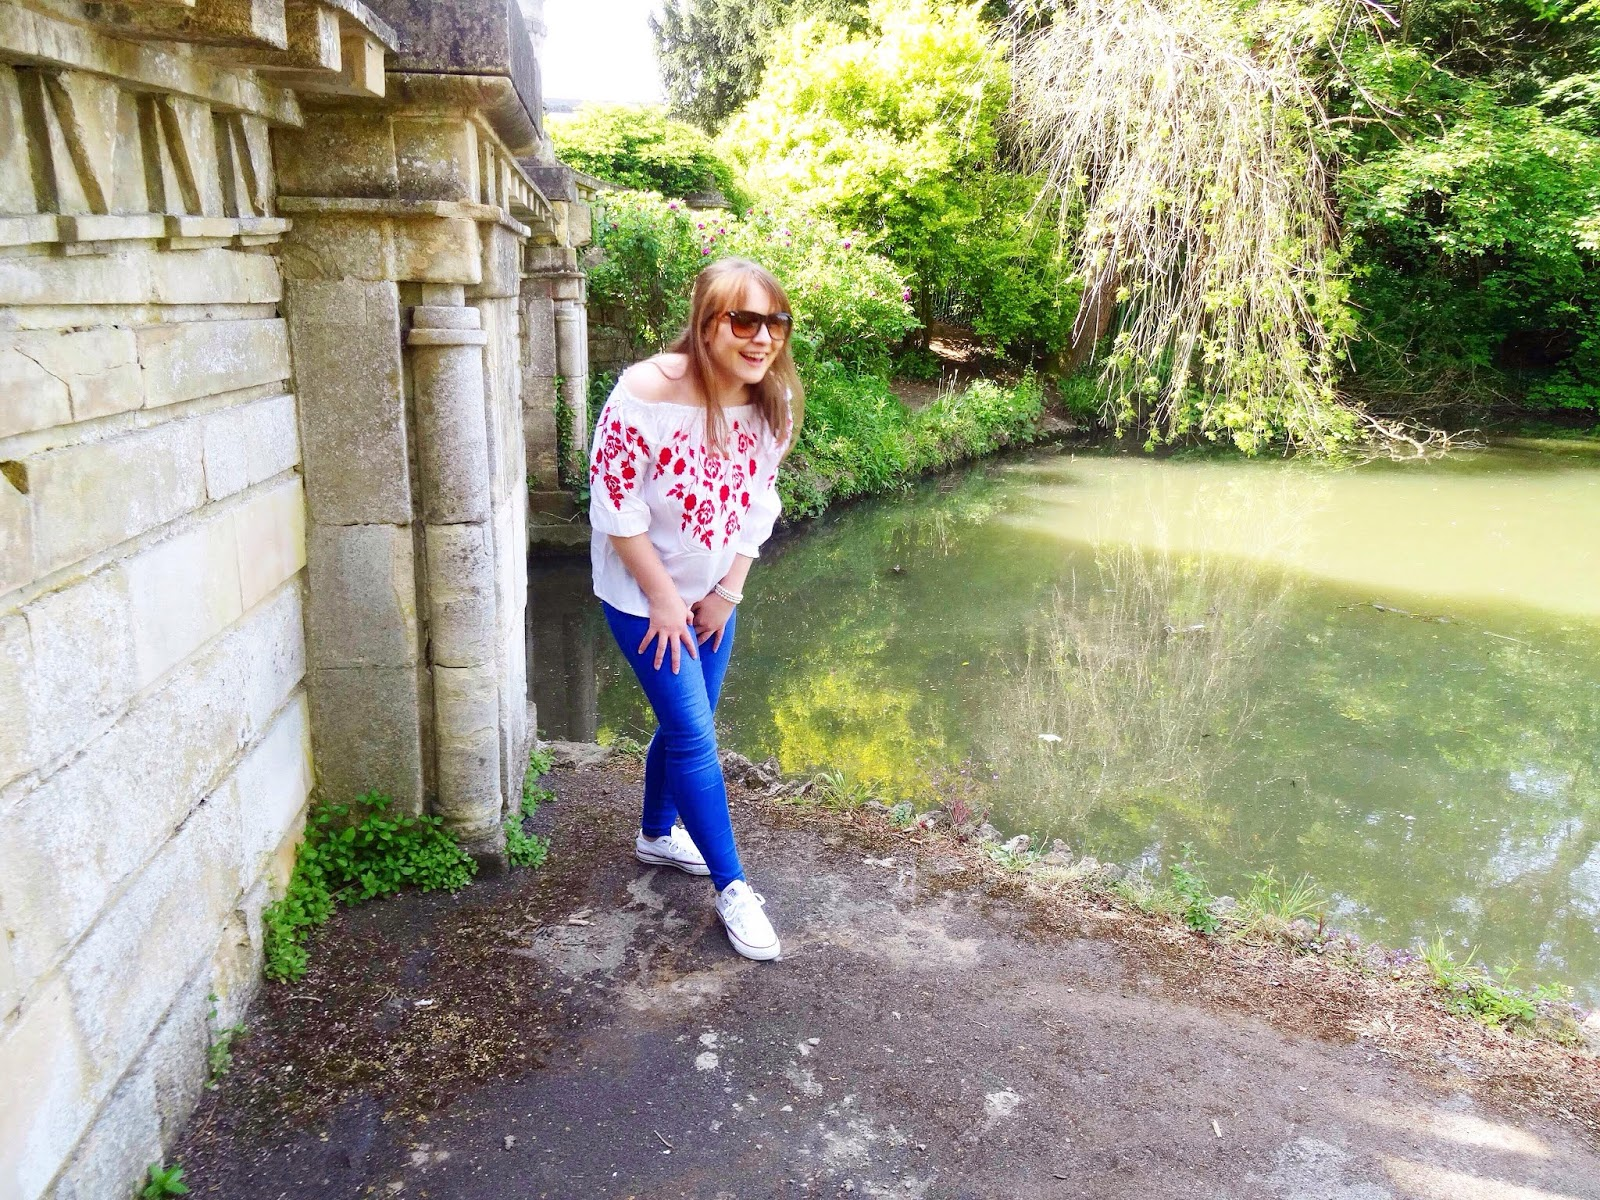 Floral Bardot Top and Bright Blue Jeans